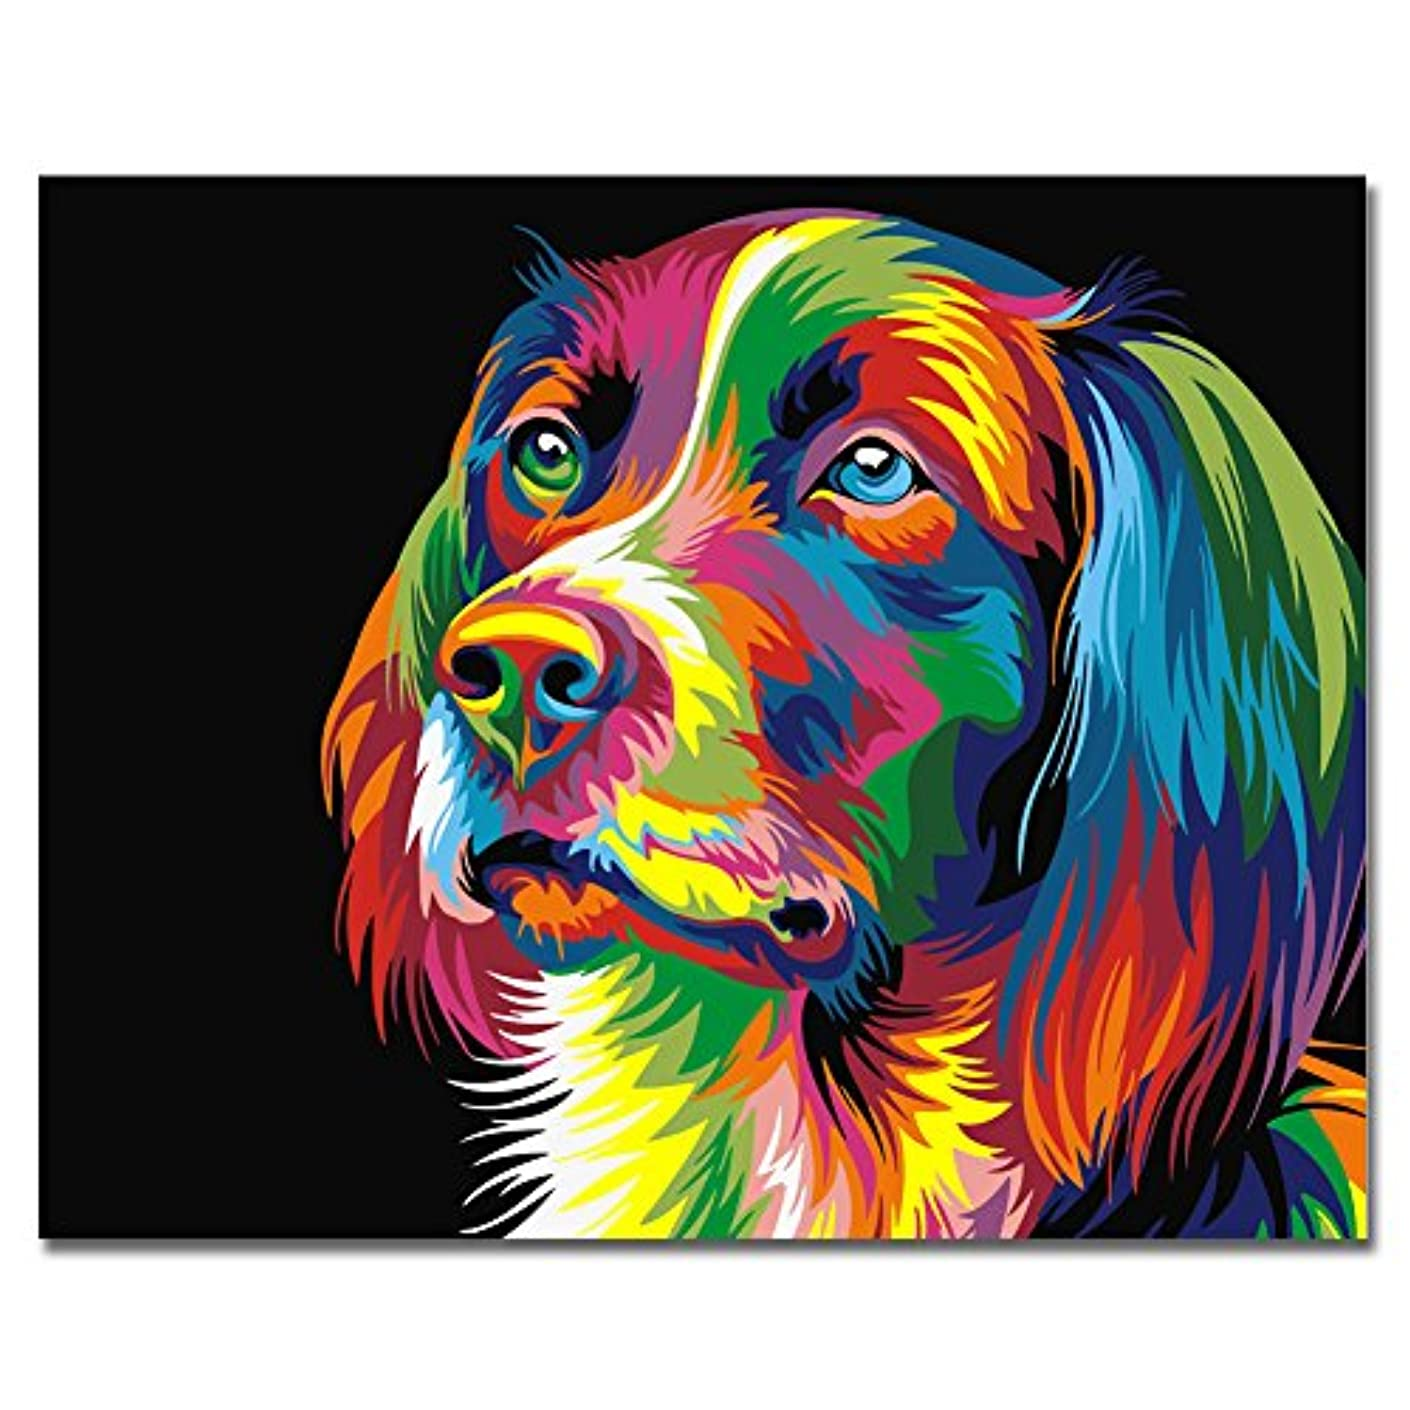 BOSHUN Paint by Numbers Kits with Brushes and Acrylic Pigment DIY Canvas Painting for Adults Beginner- Colorful Dog 16 x 20 inch(Without Frame)